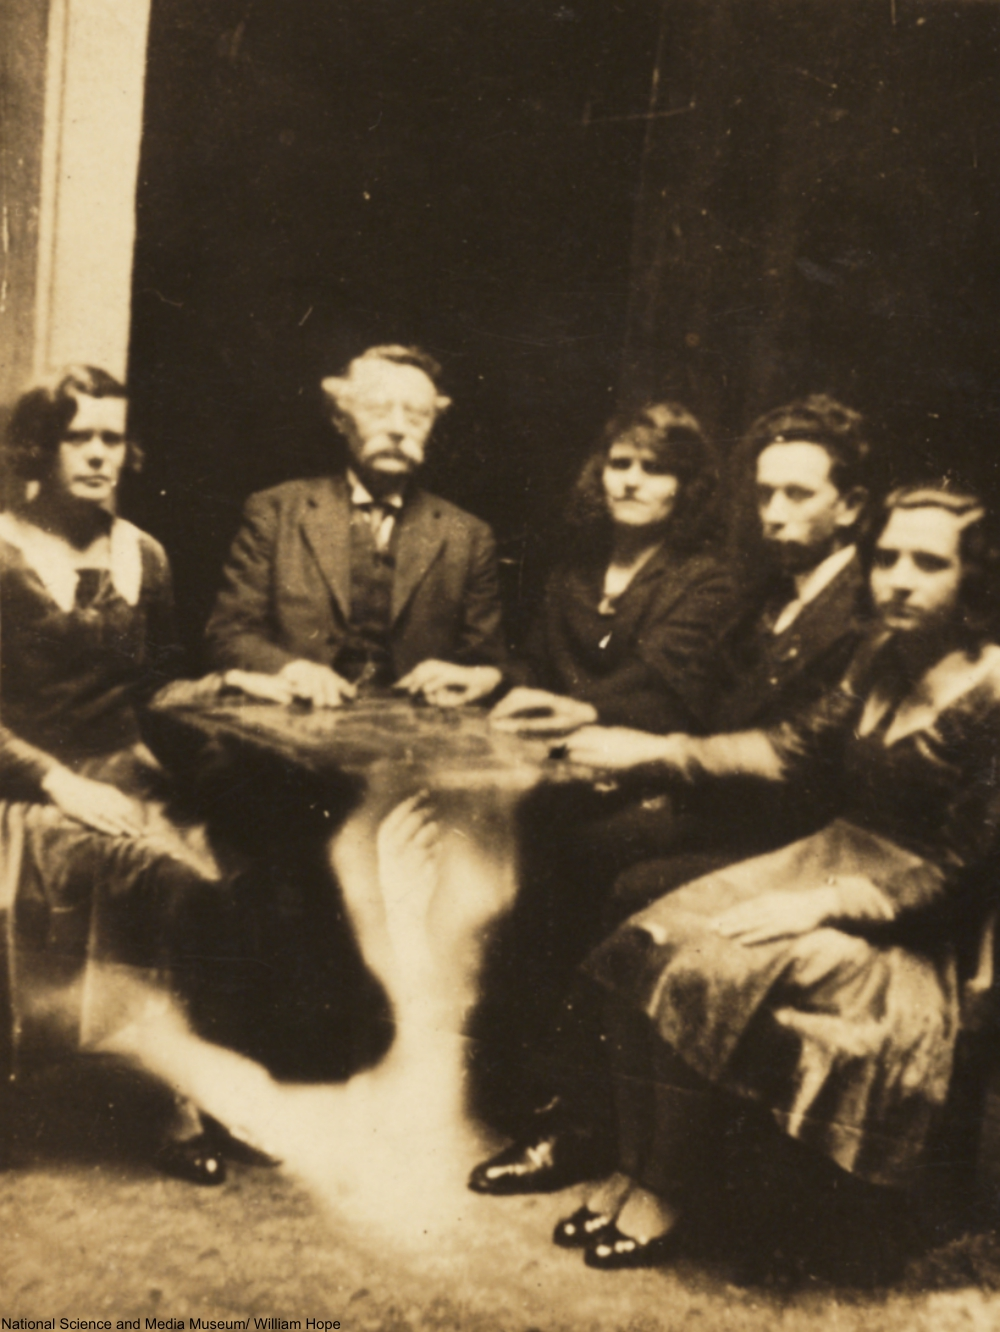 spirit photography of a seance